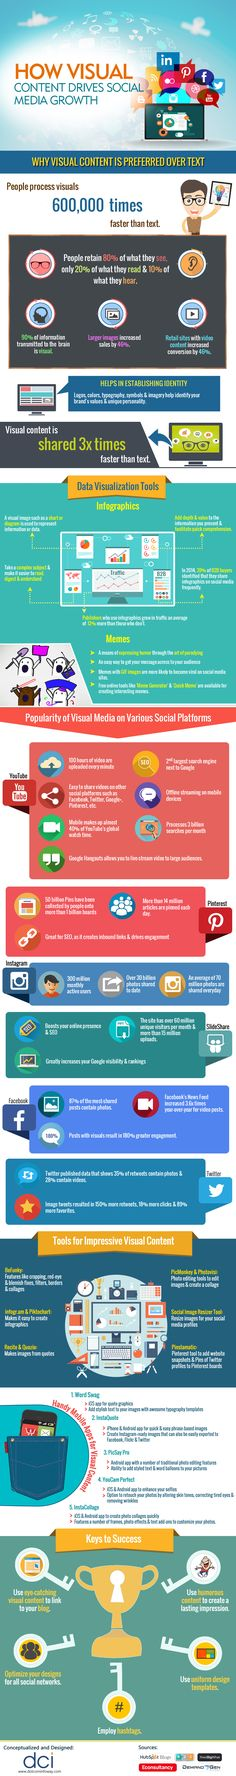 How Visual Content Drives Social Media Growth - infographic